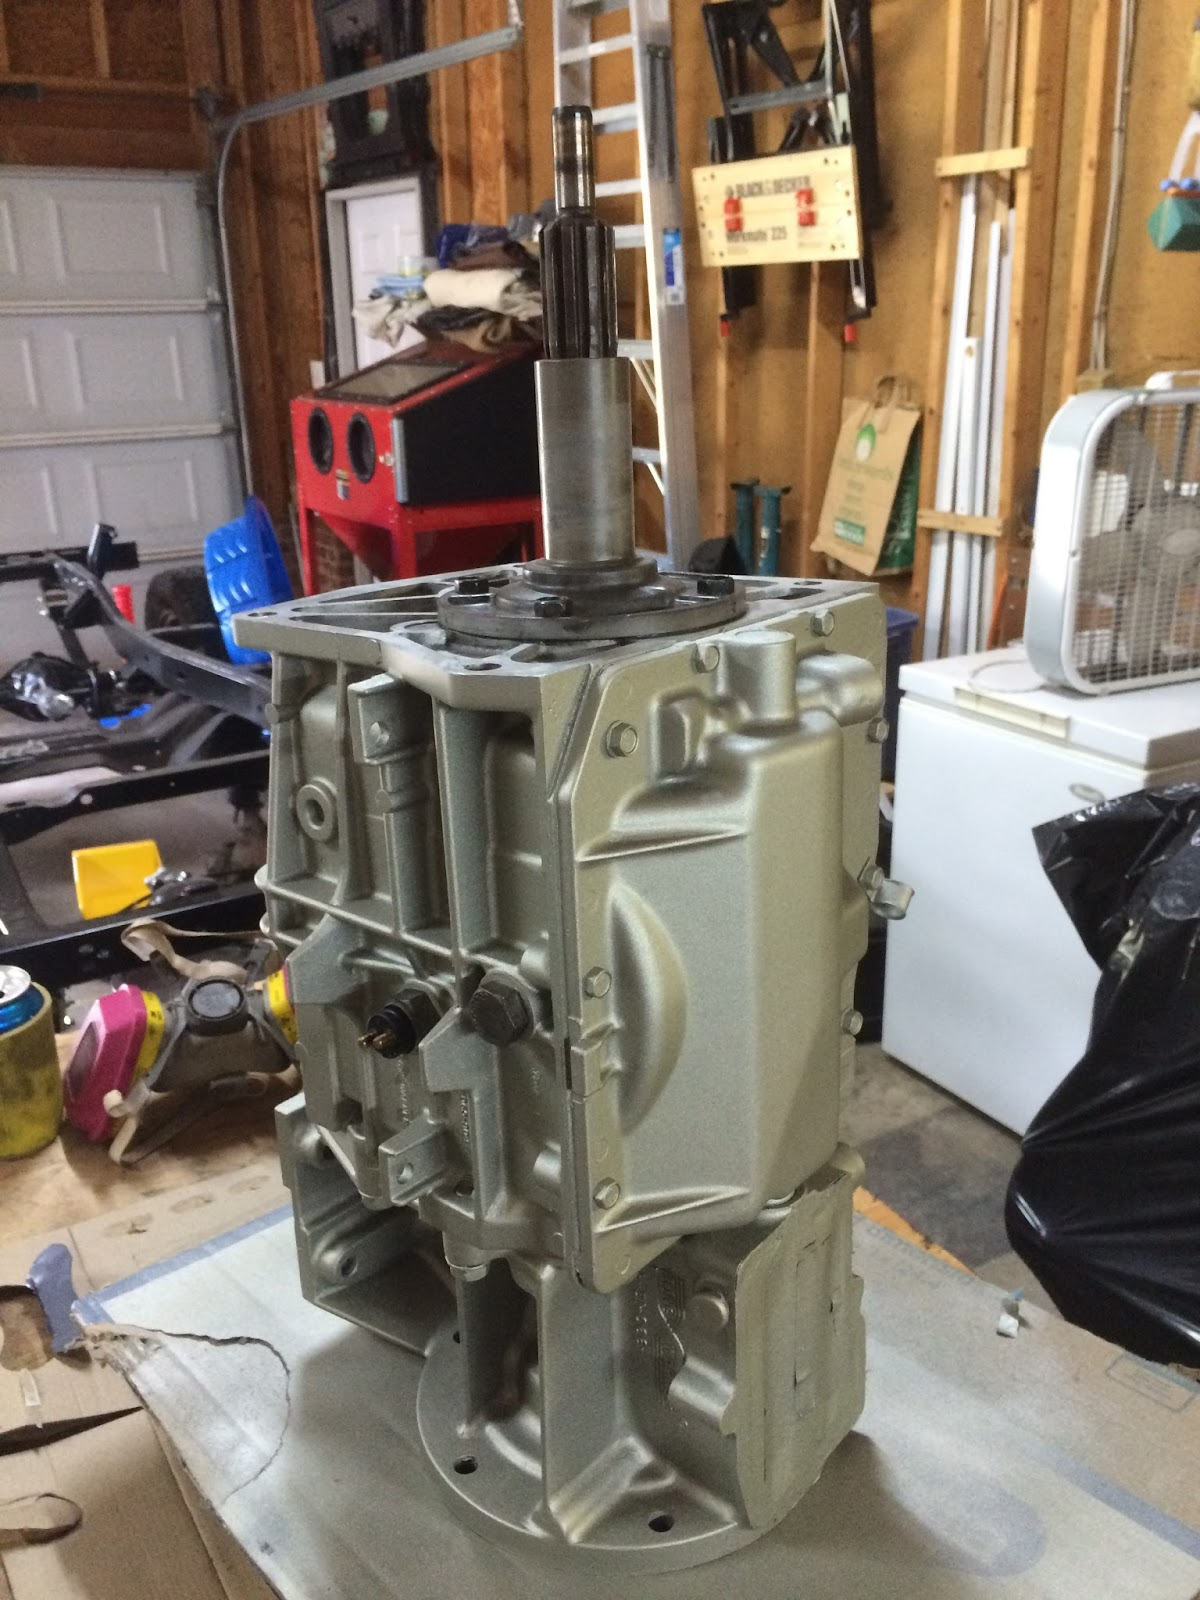 T4 Borg Warner Transmission Rebuild (Assembly) | 1983 CJ7